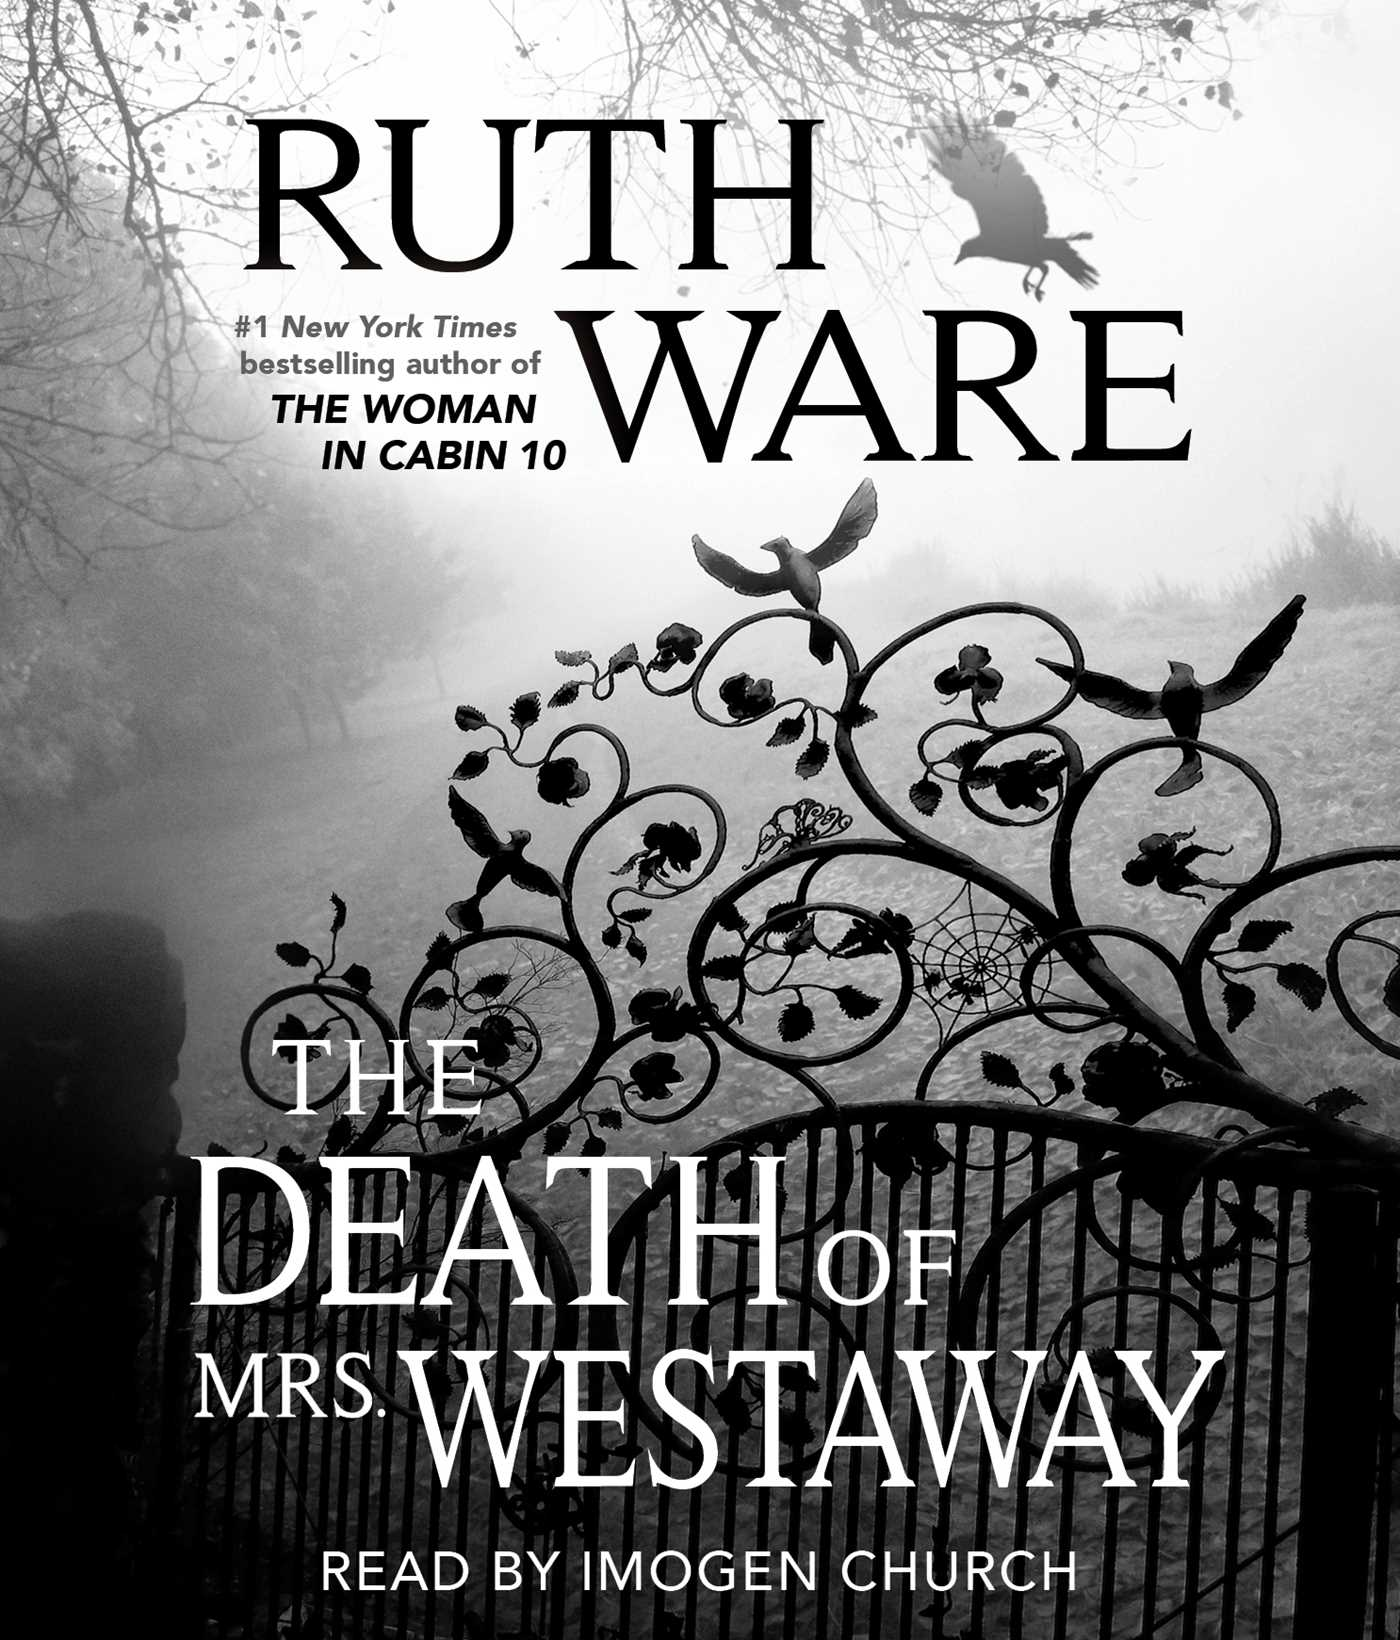 The death of mrs westaway 9781508251705 hr